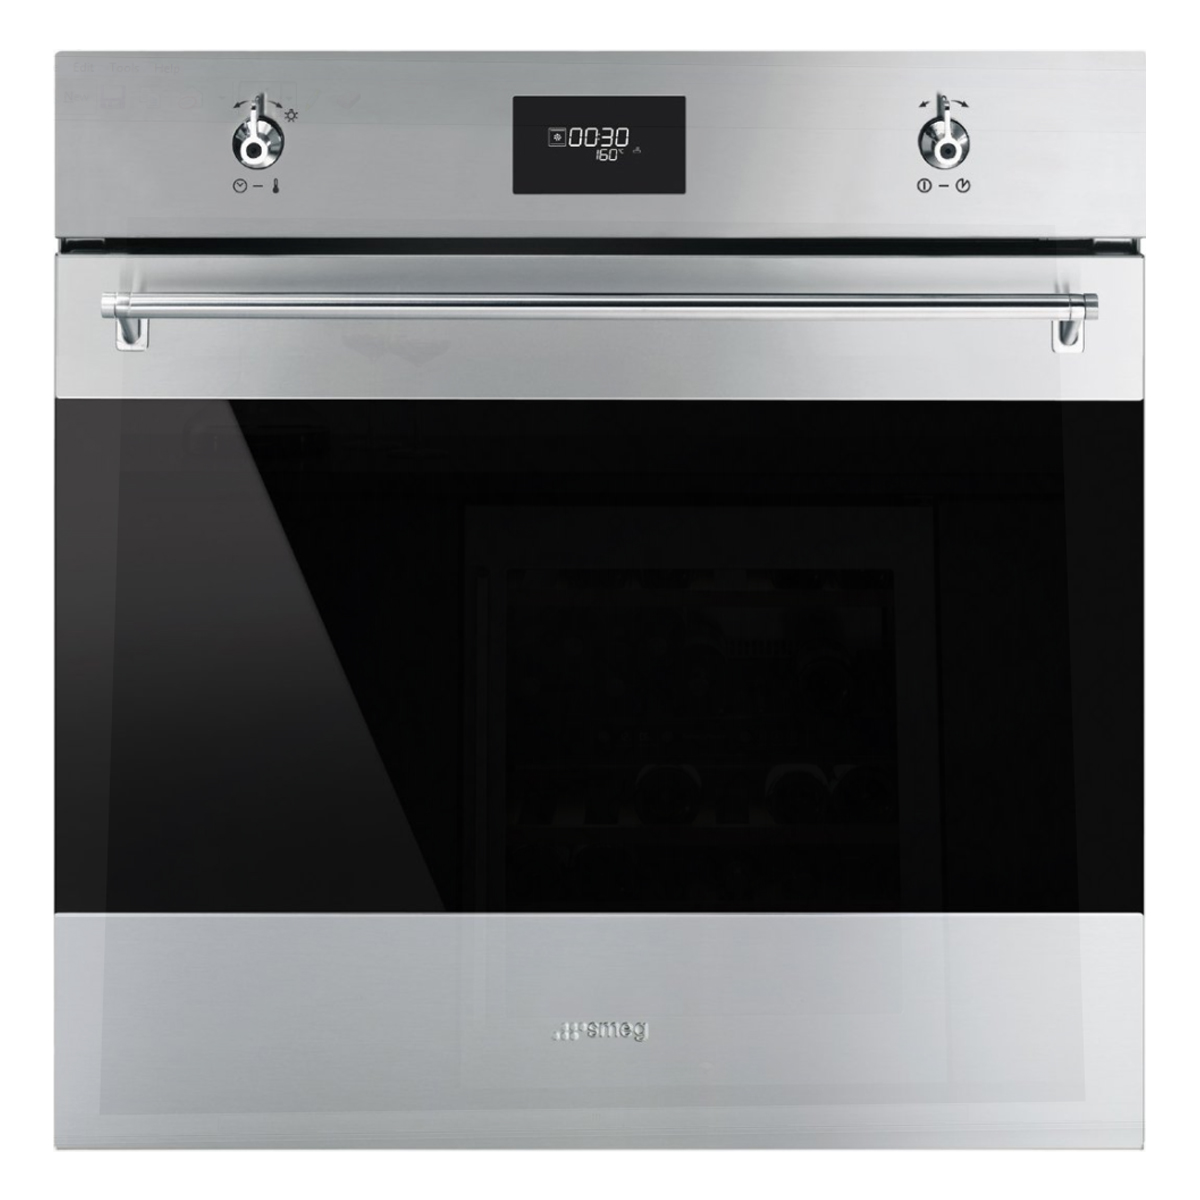 Smeg SFA6309X 60cm Electric Built-In Oven 59315